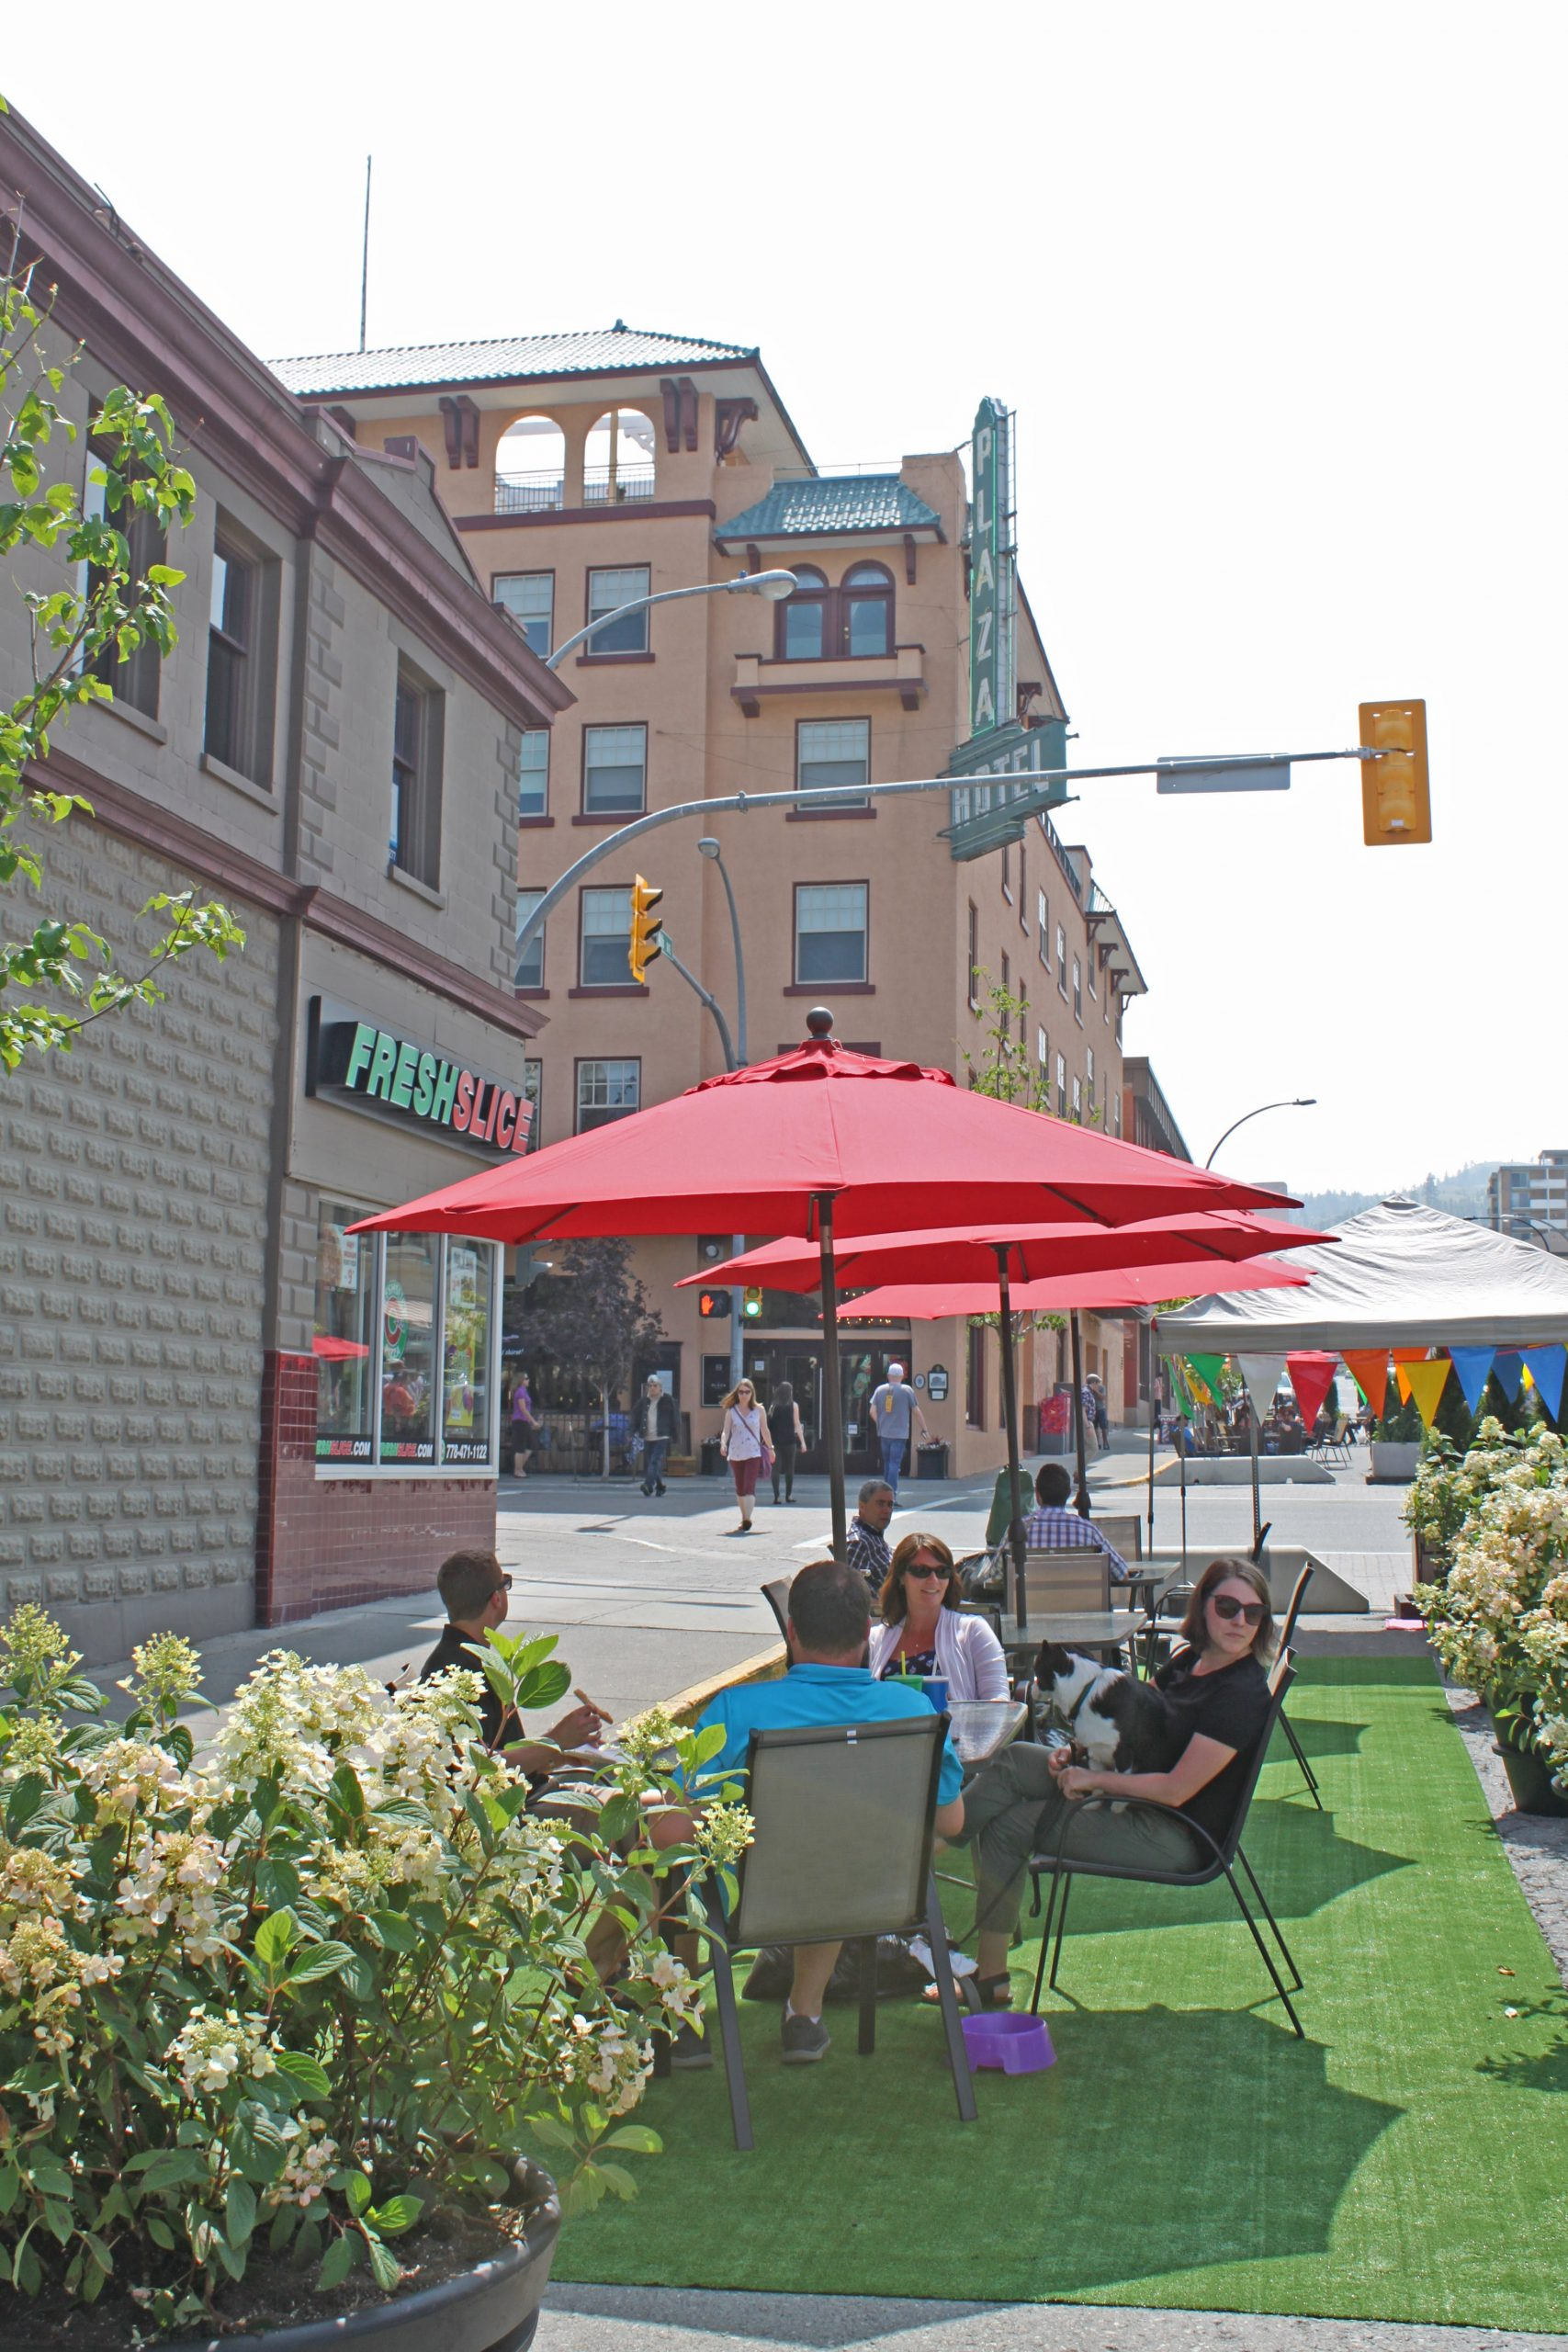 Mayor of Kamloops says its too early to determine if 4th Avenue Plaza Pilot Project will continue